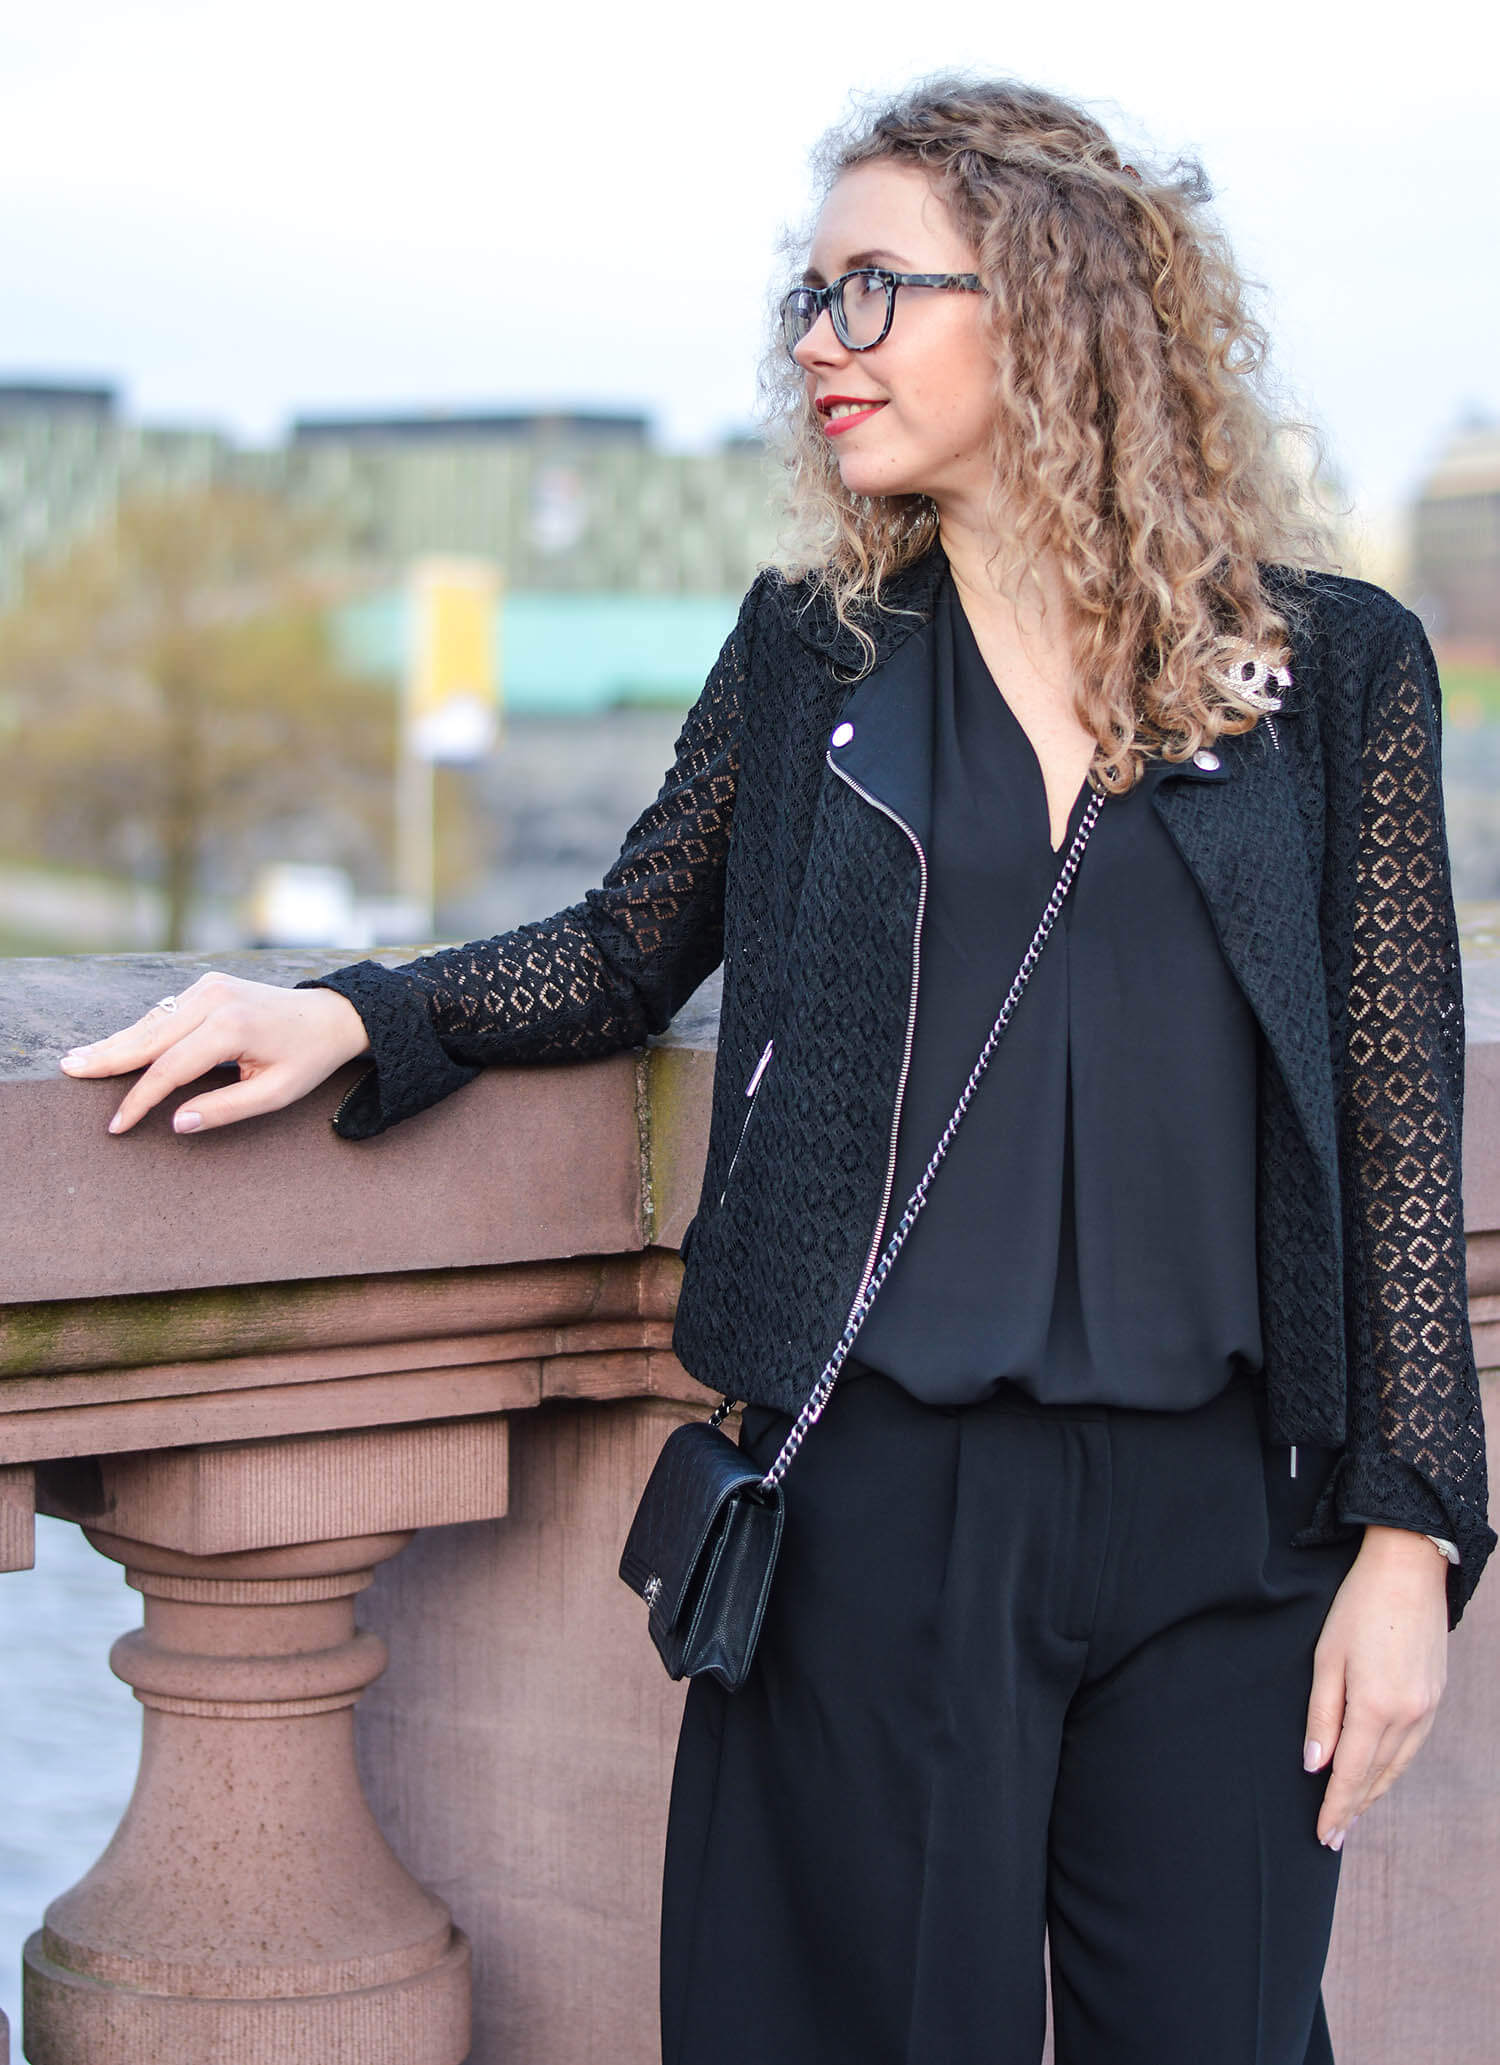 Kationette-fashionblog-nrw-Outfit-Allblack-streetstyle-nightout-Berlin